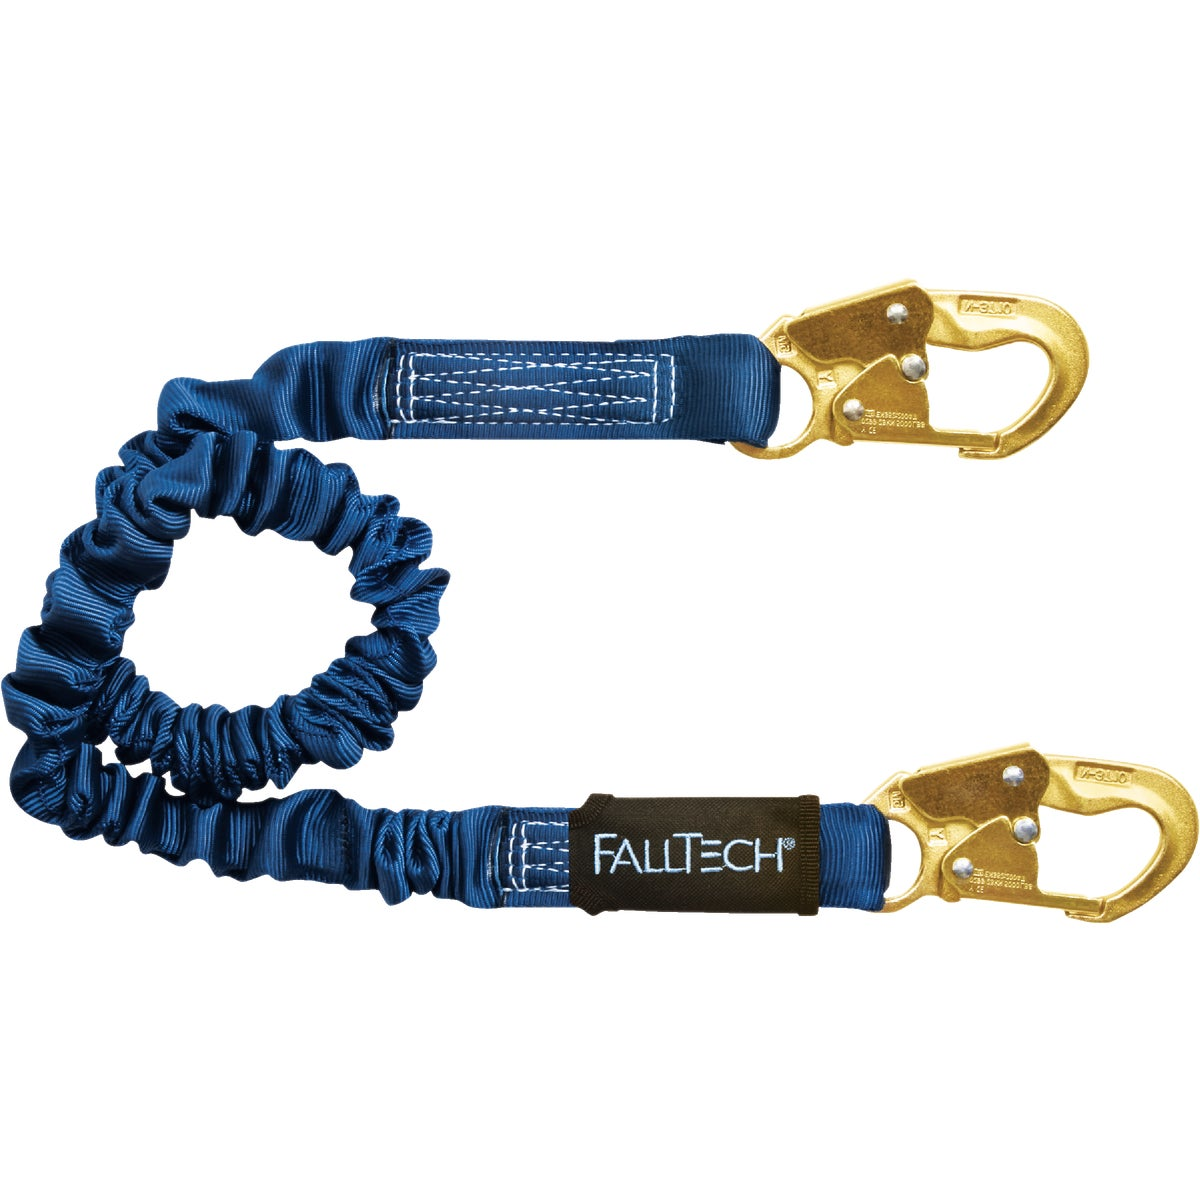 SHOCK ABSORBING LANYARD - 10096790 by Msa Safety